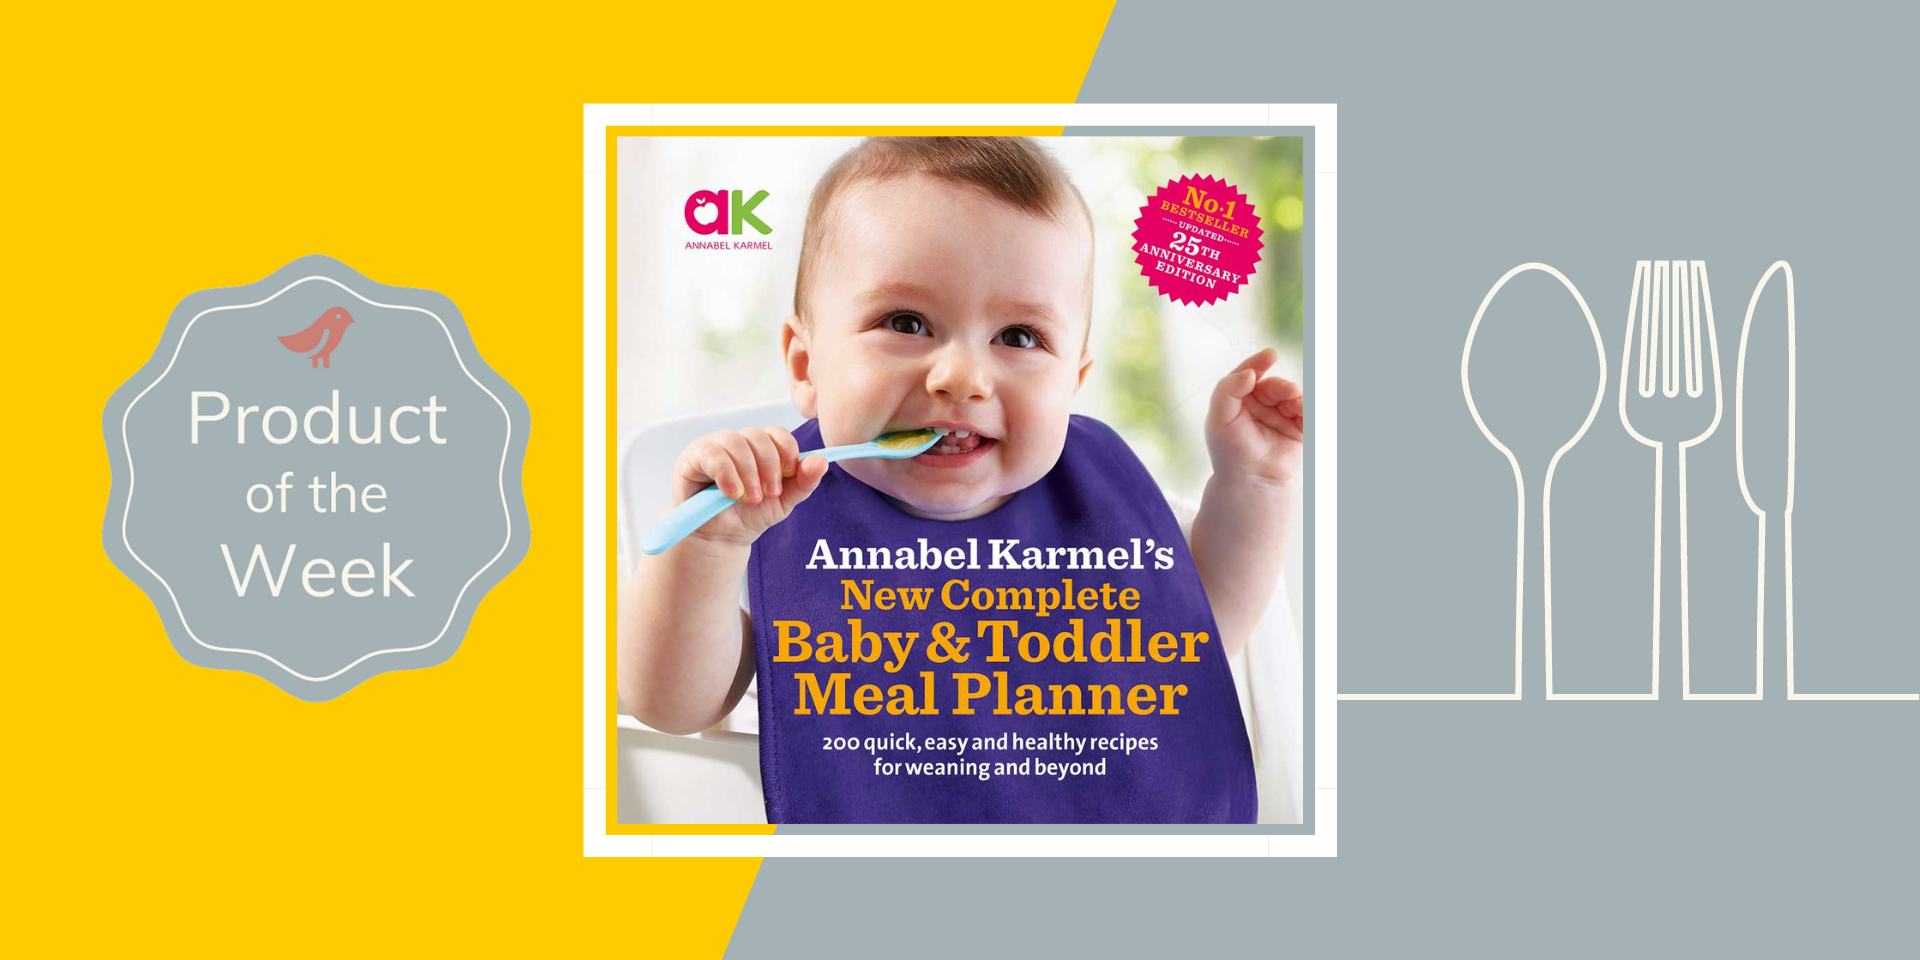 baby and toddler meal planner